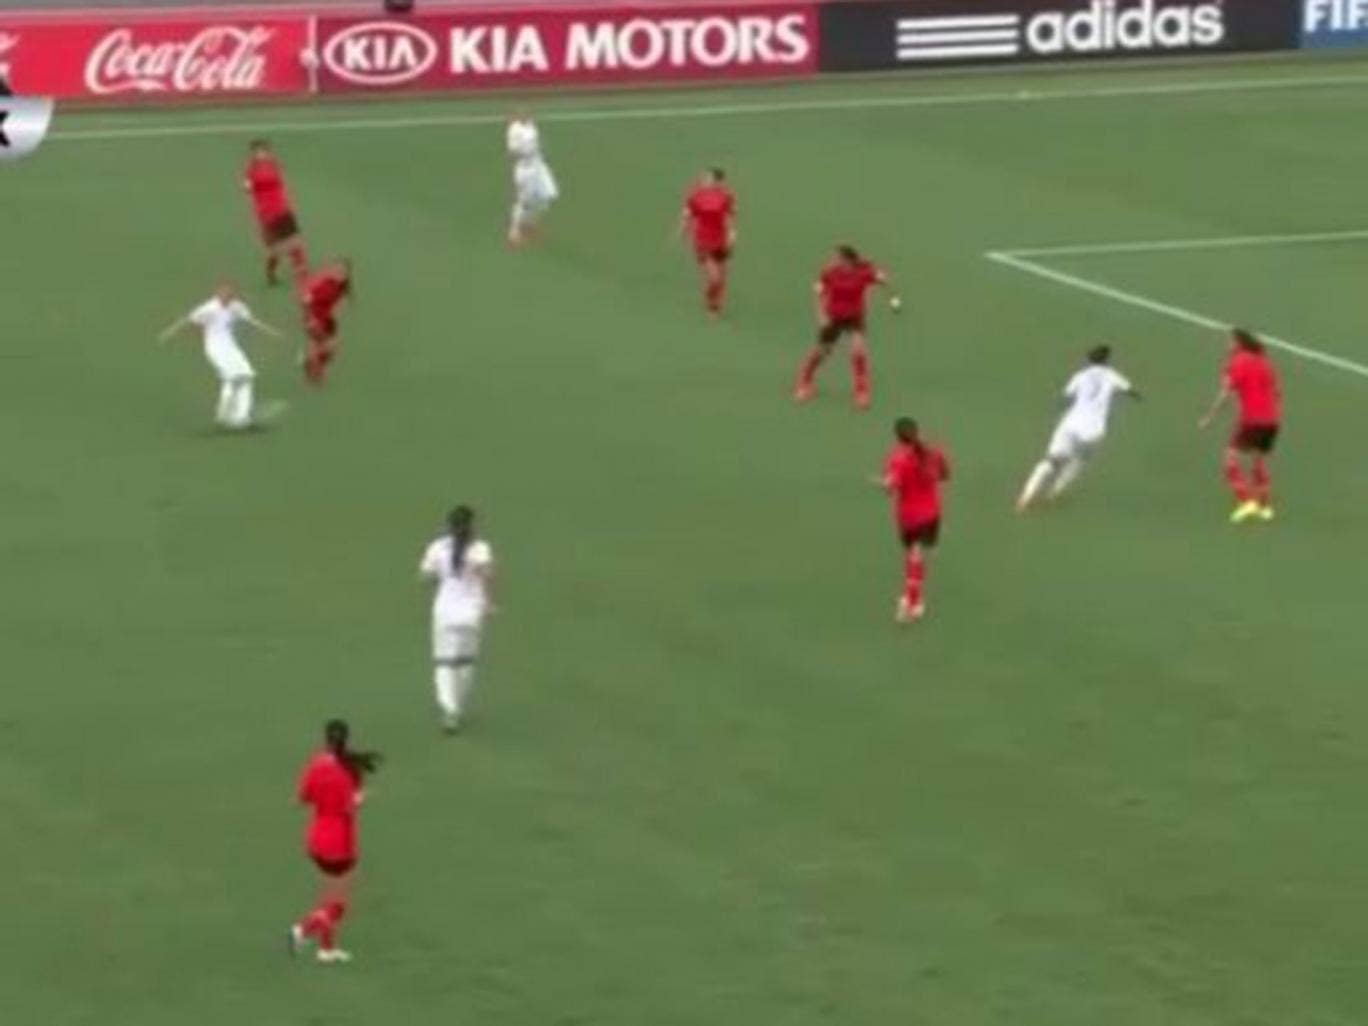 Beth Mead scored a stunning goal for England at the women's U20 World Cup